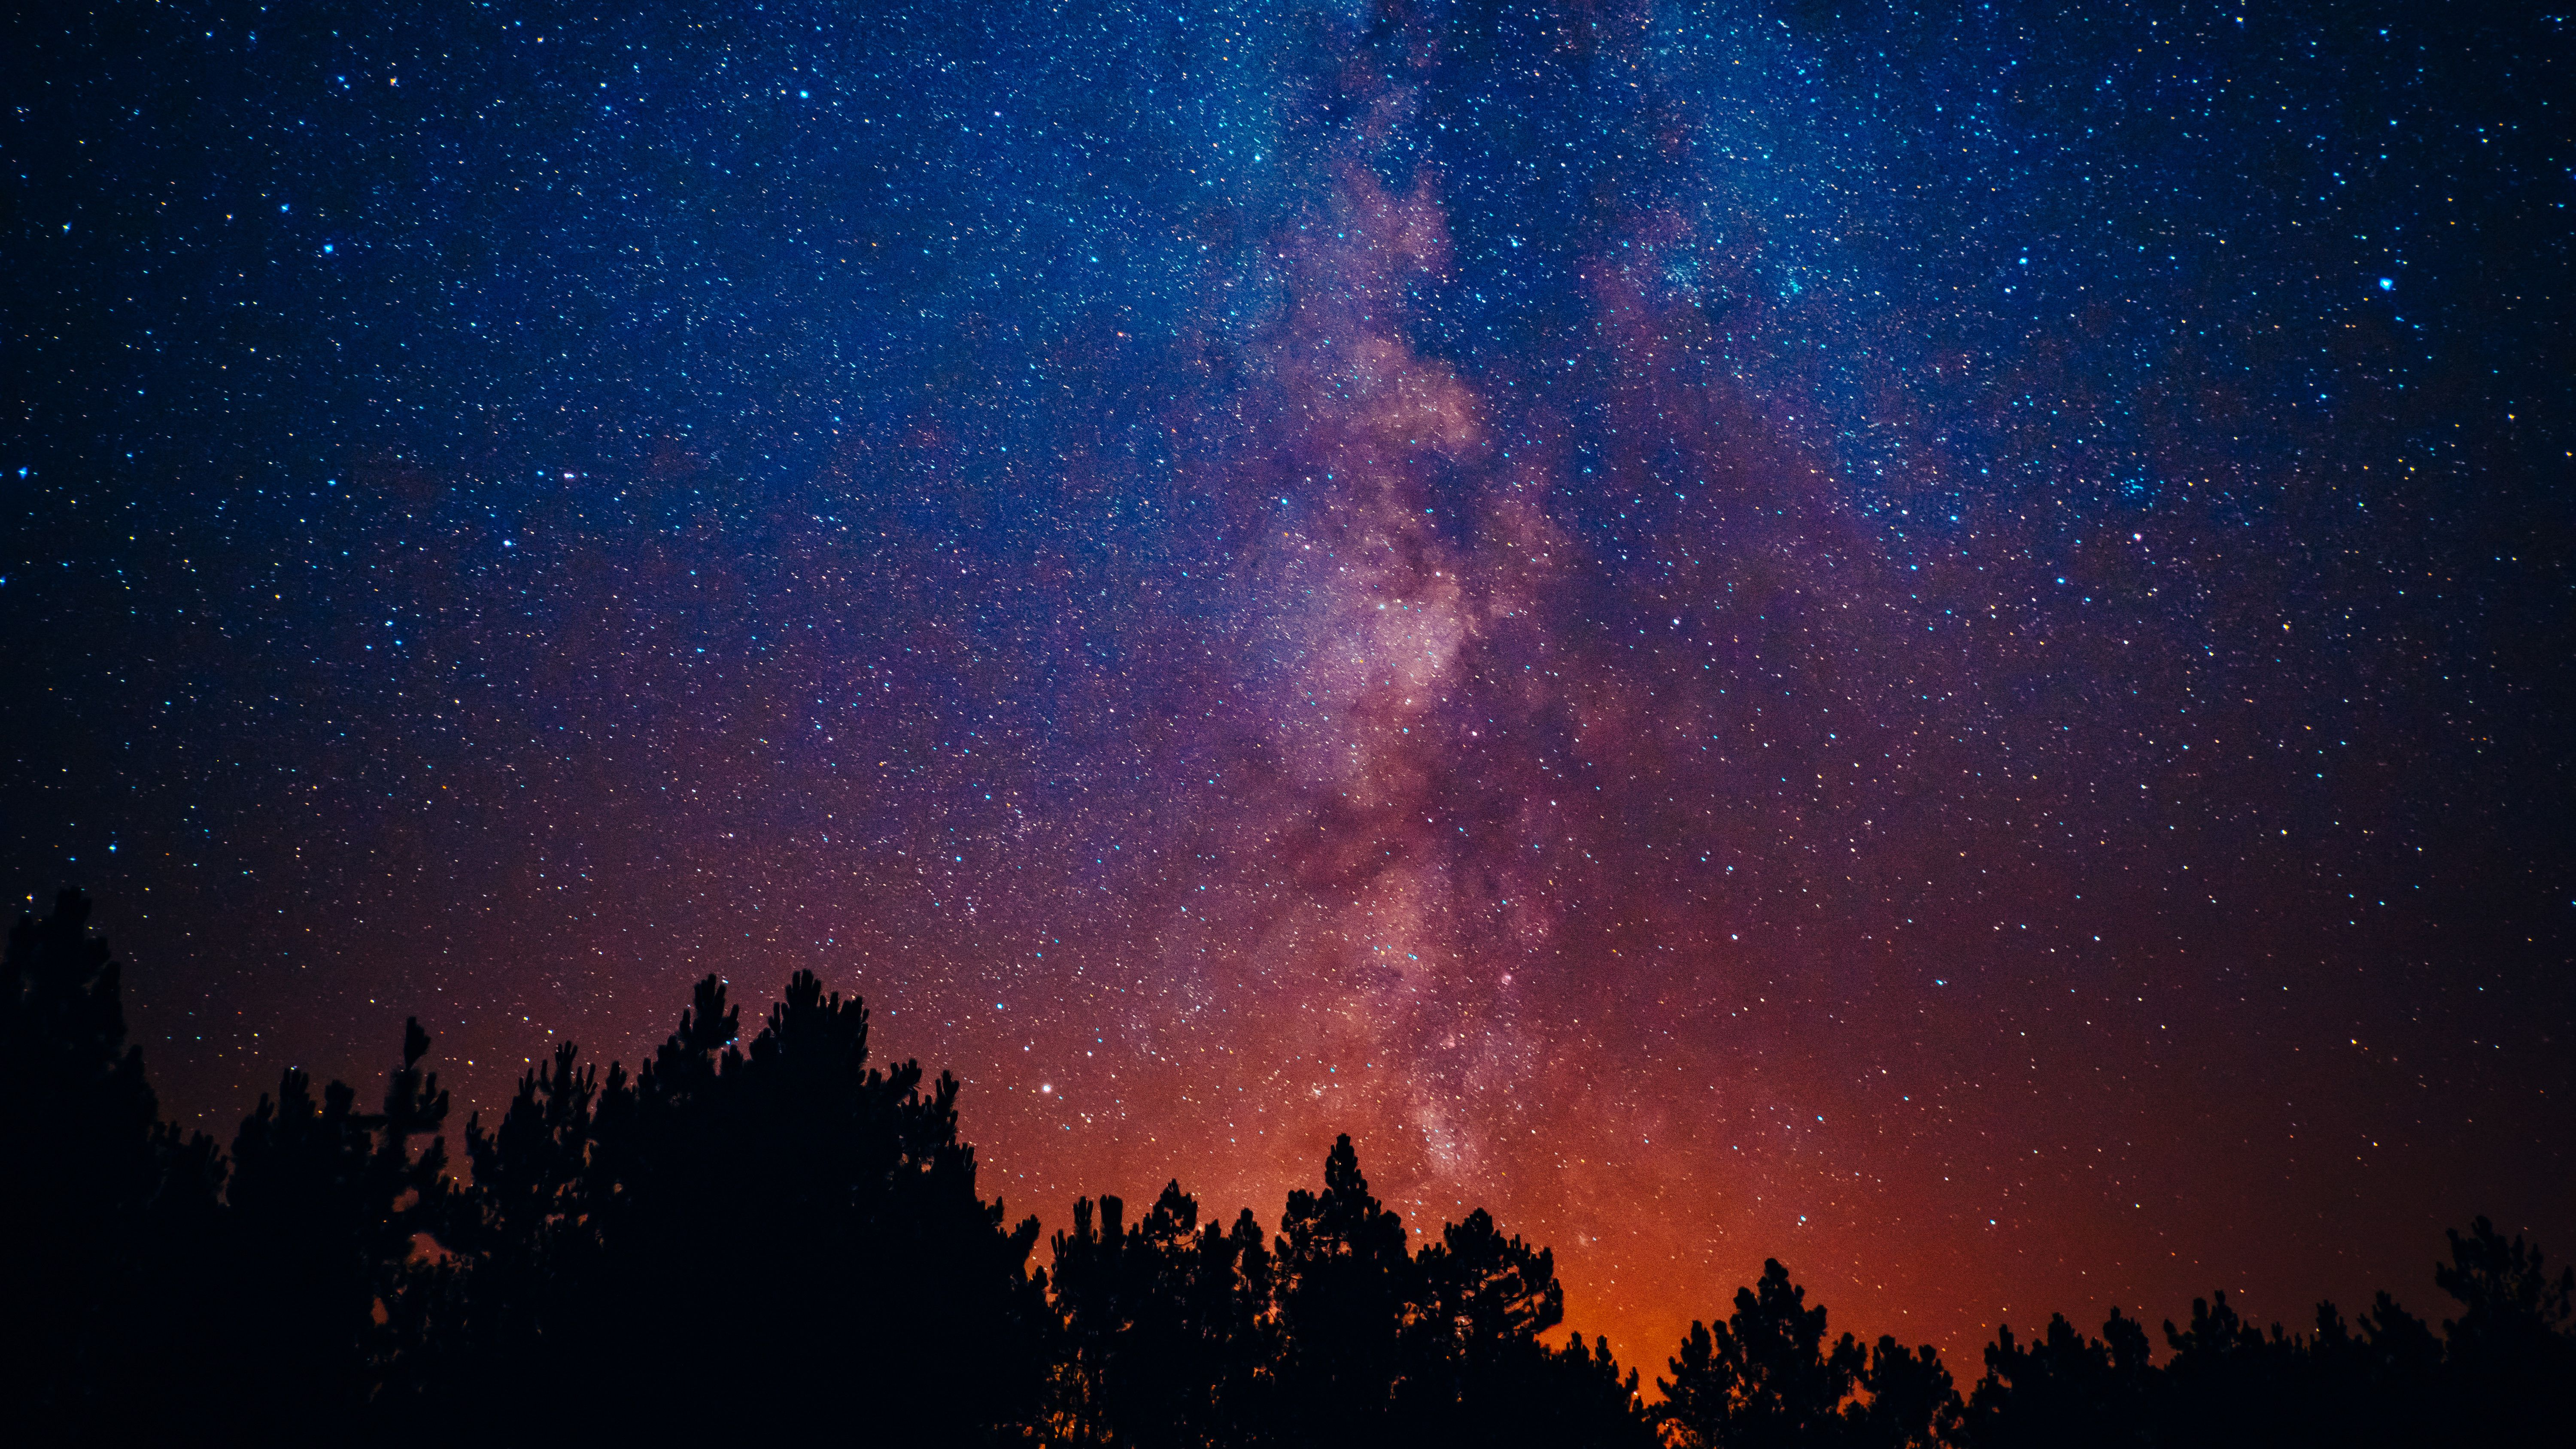 Free Images Nature Outdoors Space Outer Space Night Painting Nature Images Free Images Cactus trees night starry sky wallpaper